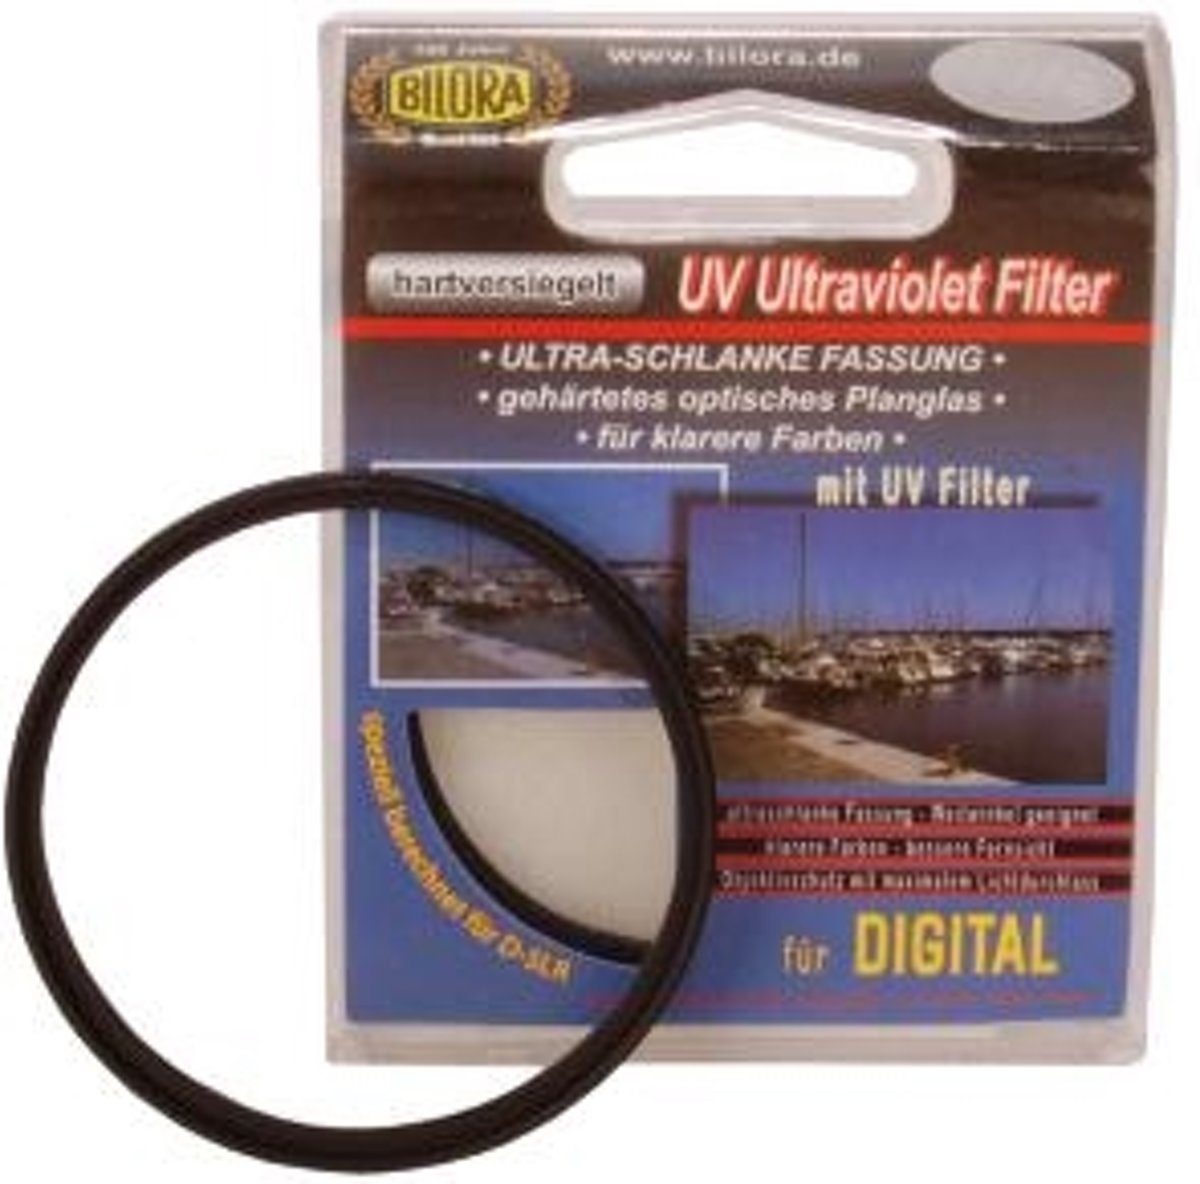 Bilora UV-filter standaard 77 mm